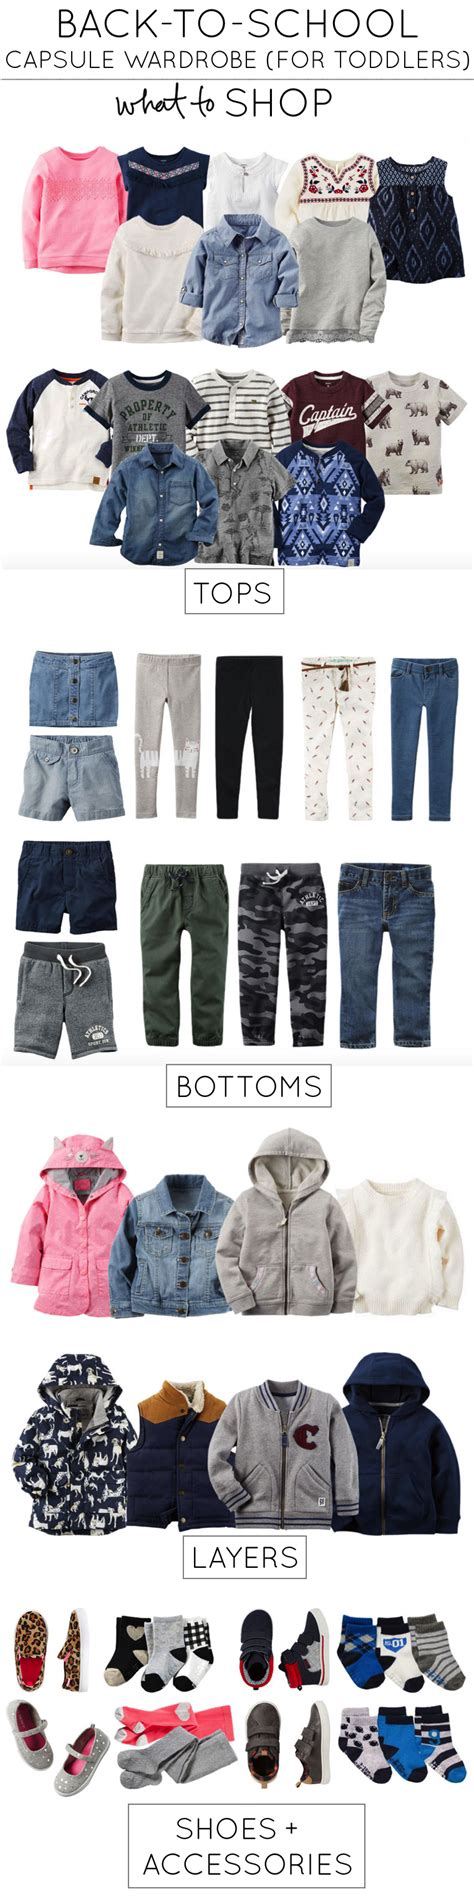 Back To School Wardrobe by How To Create A Back To School Capsule Wardrobe For